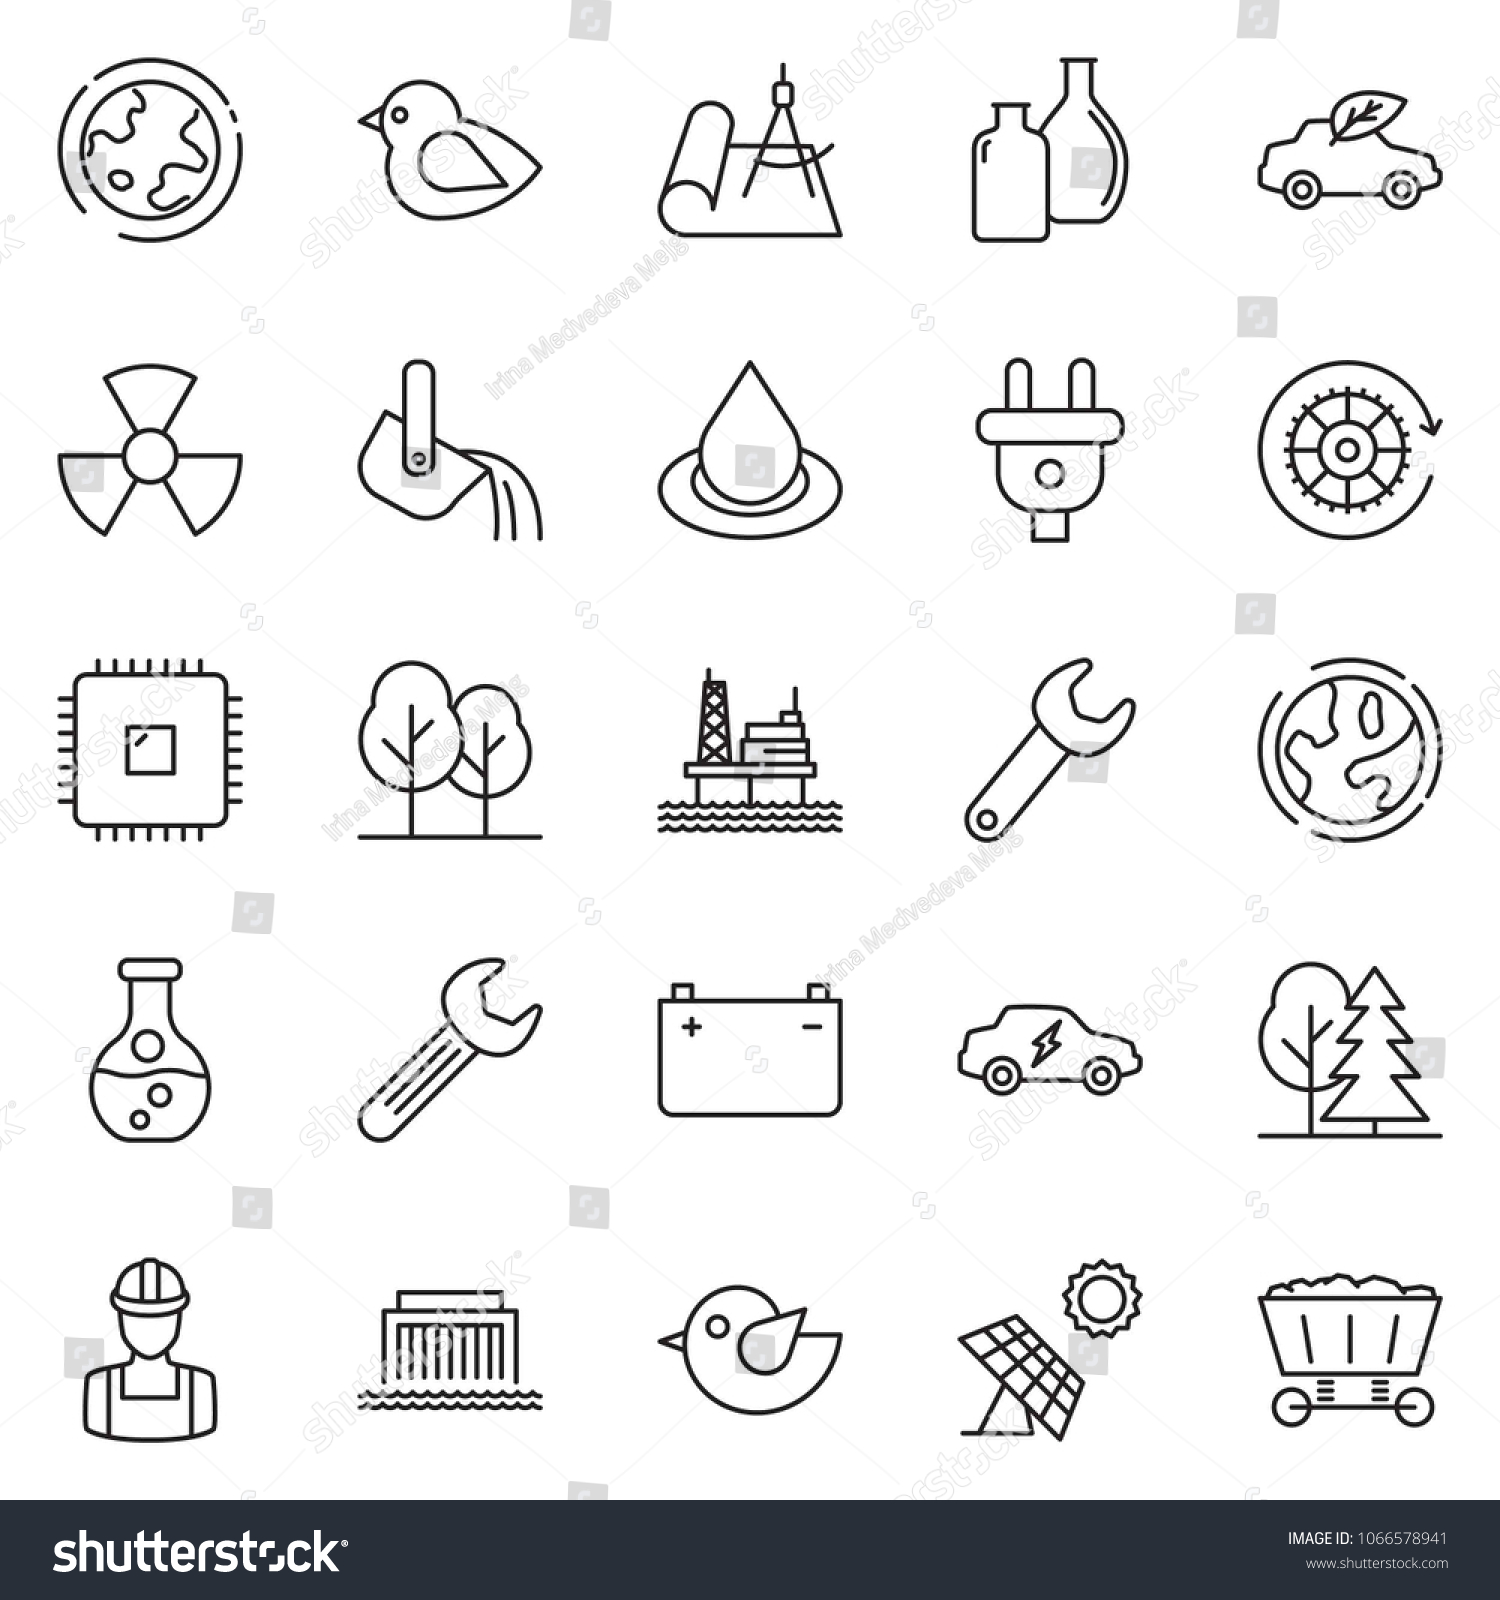 Thin Line Icon Set Offshore Oil Stock Vector Royalty Free Circuit Panel Id Chart Kit Quickly And Platform Sun Flask Earth